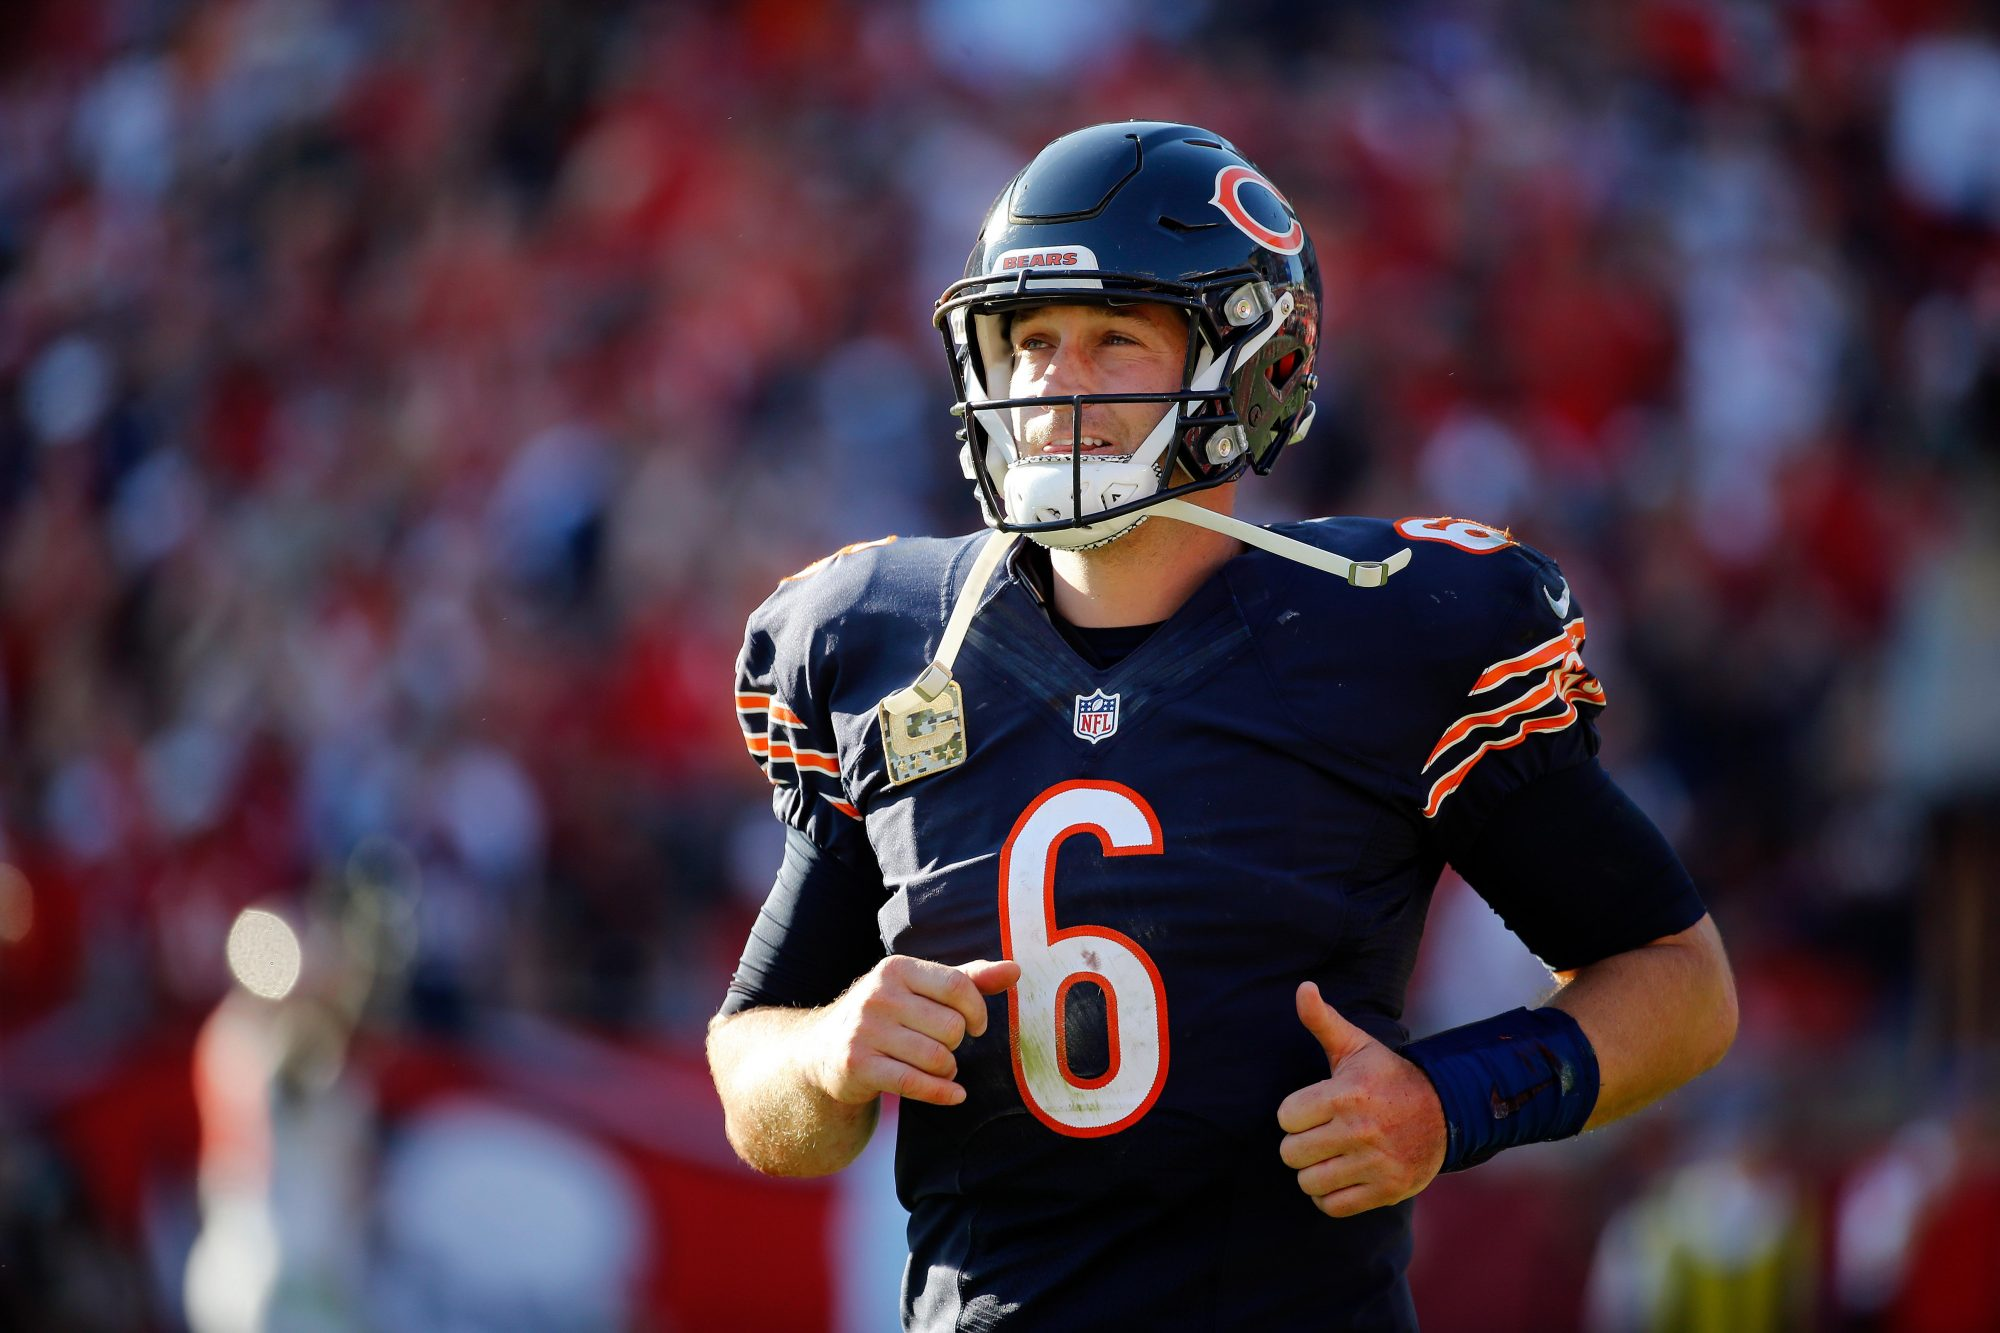 New York Jets not expected to go after Jay Cutler (Report)